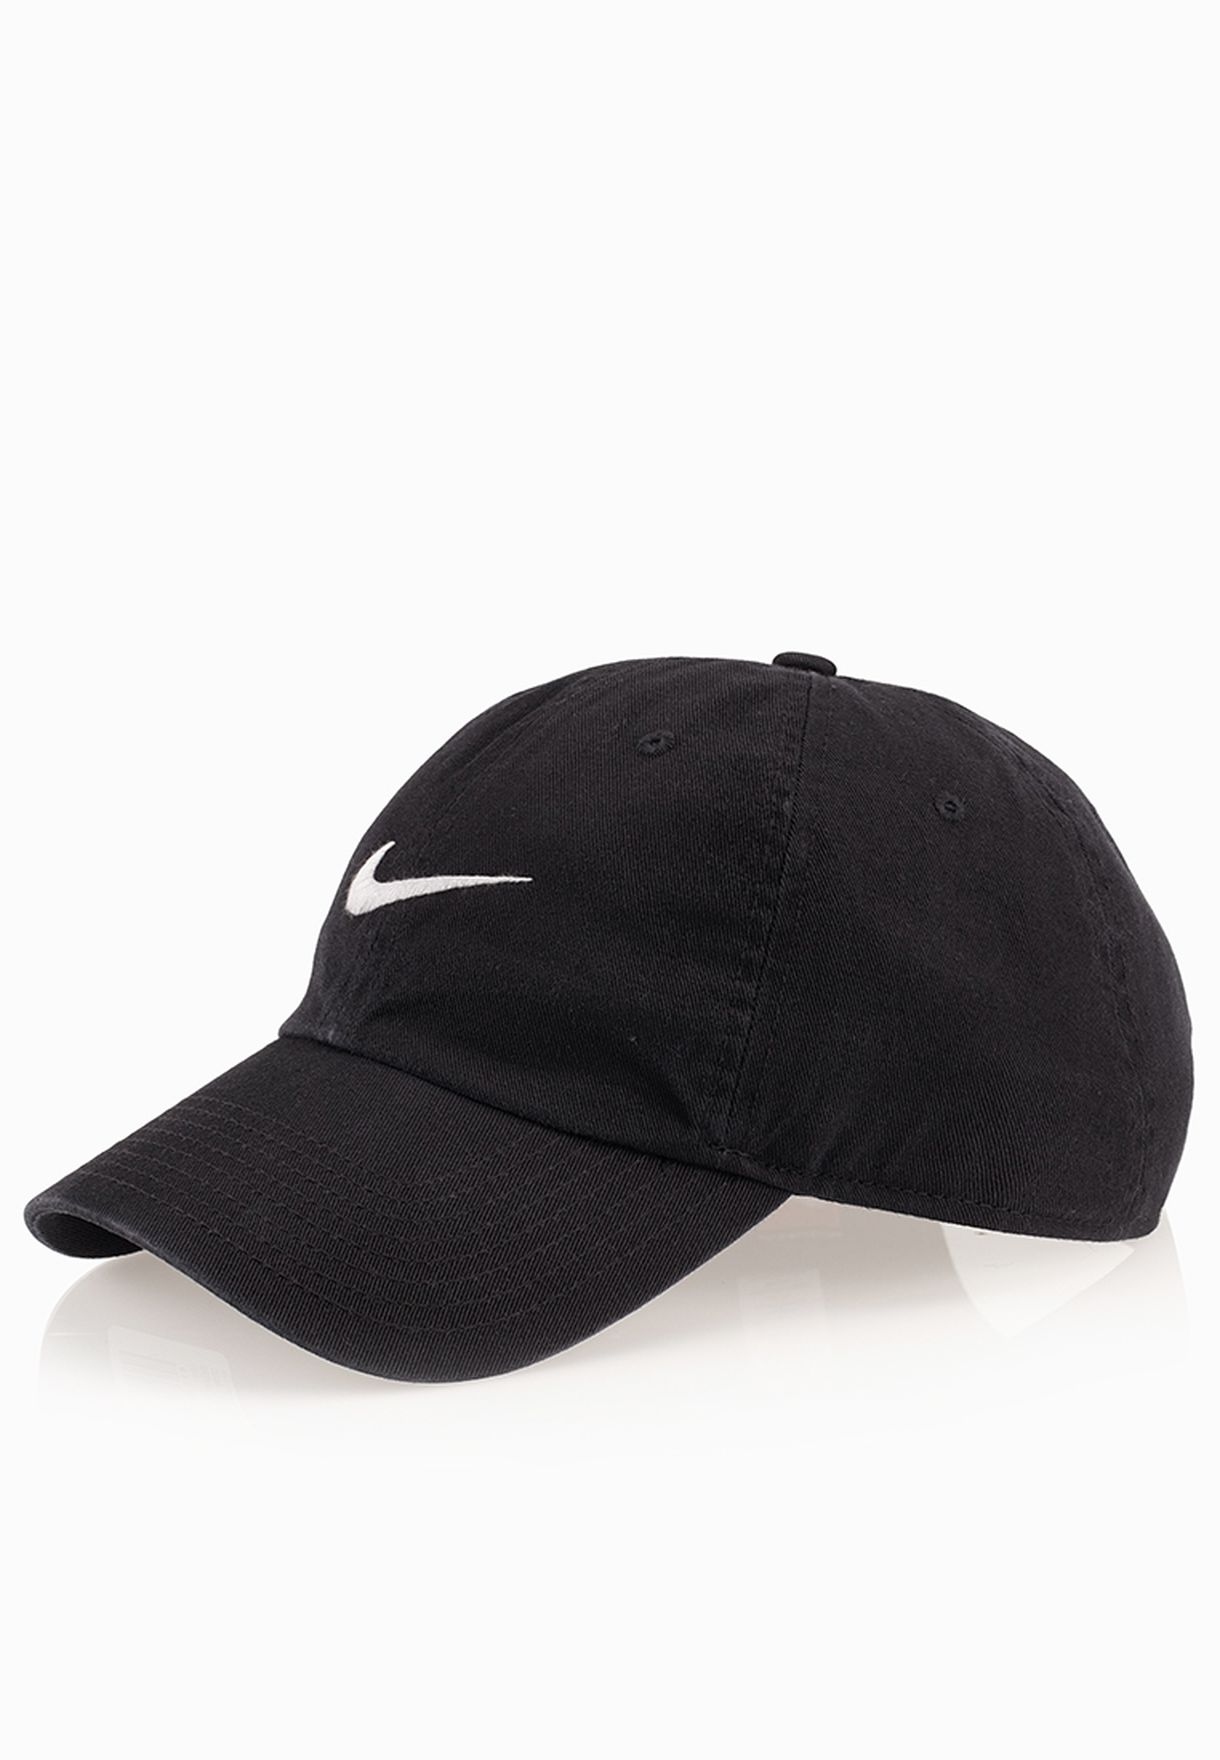 10ed126c1a4 Shop Nike black Heritage 86 Swoosh Cap 546126-010 for Men in UAE ...